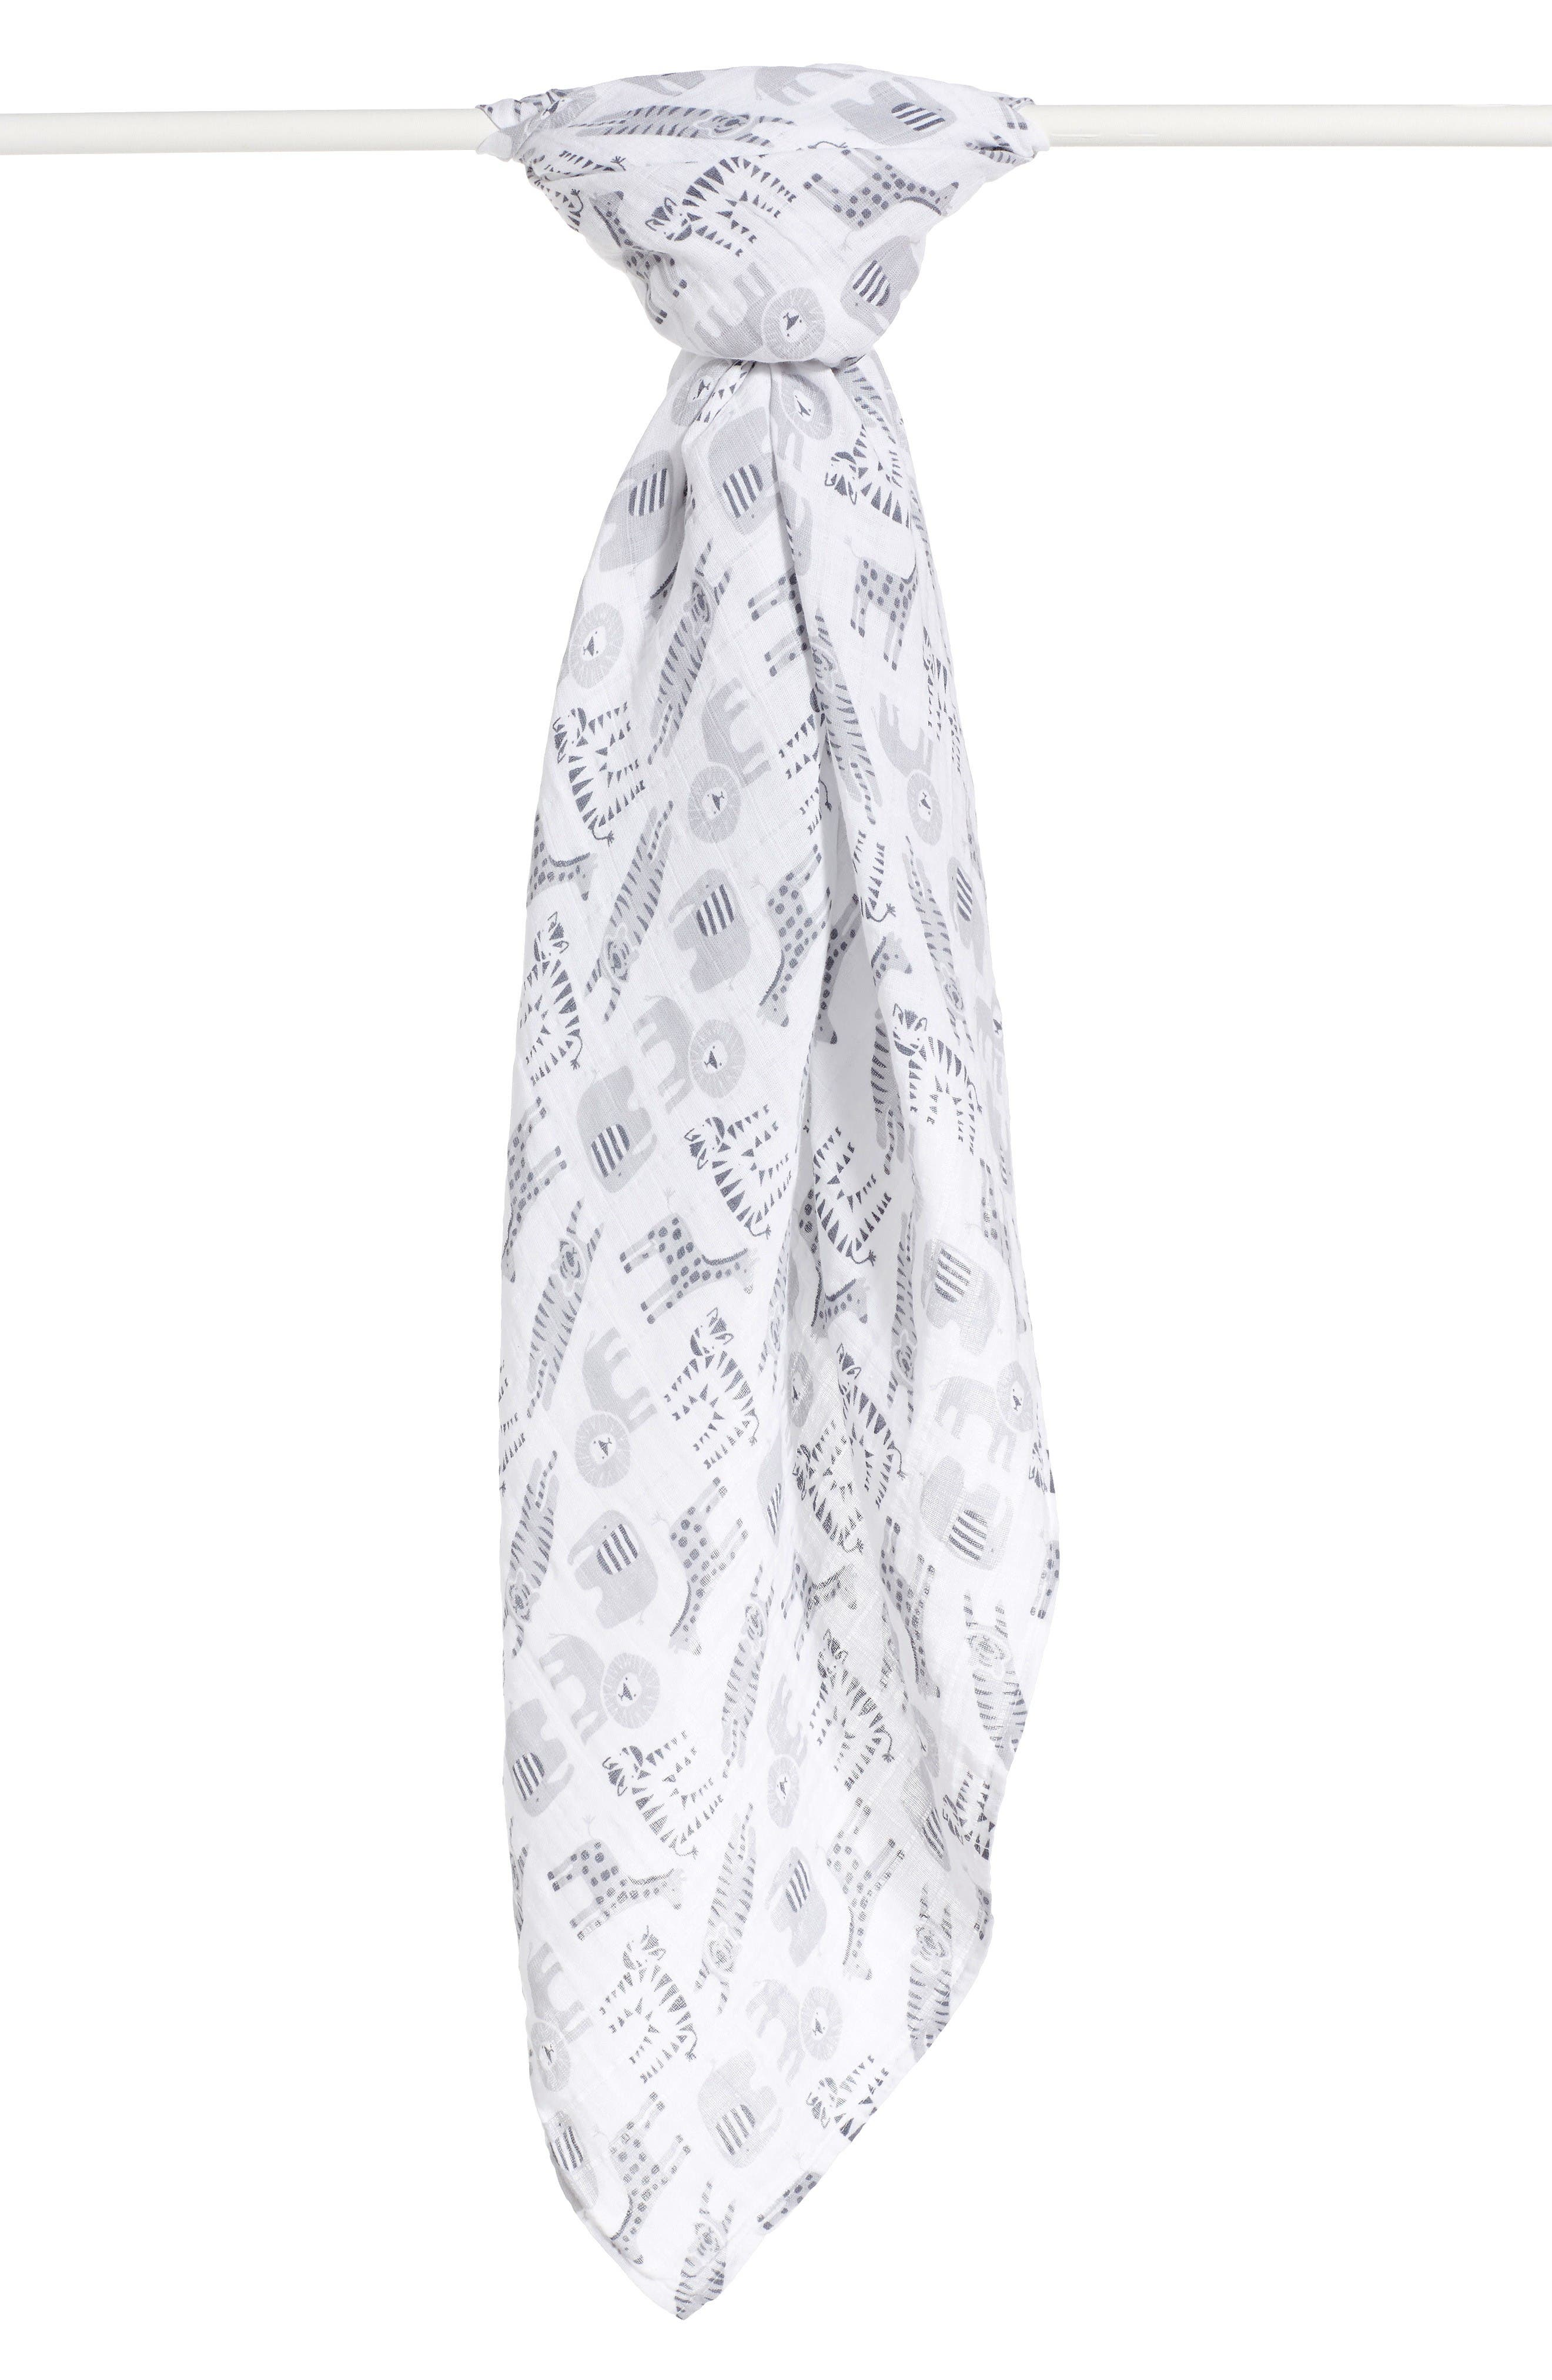 Nordstrom Baby Cotton Swaddle Blanket